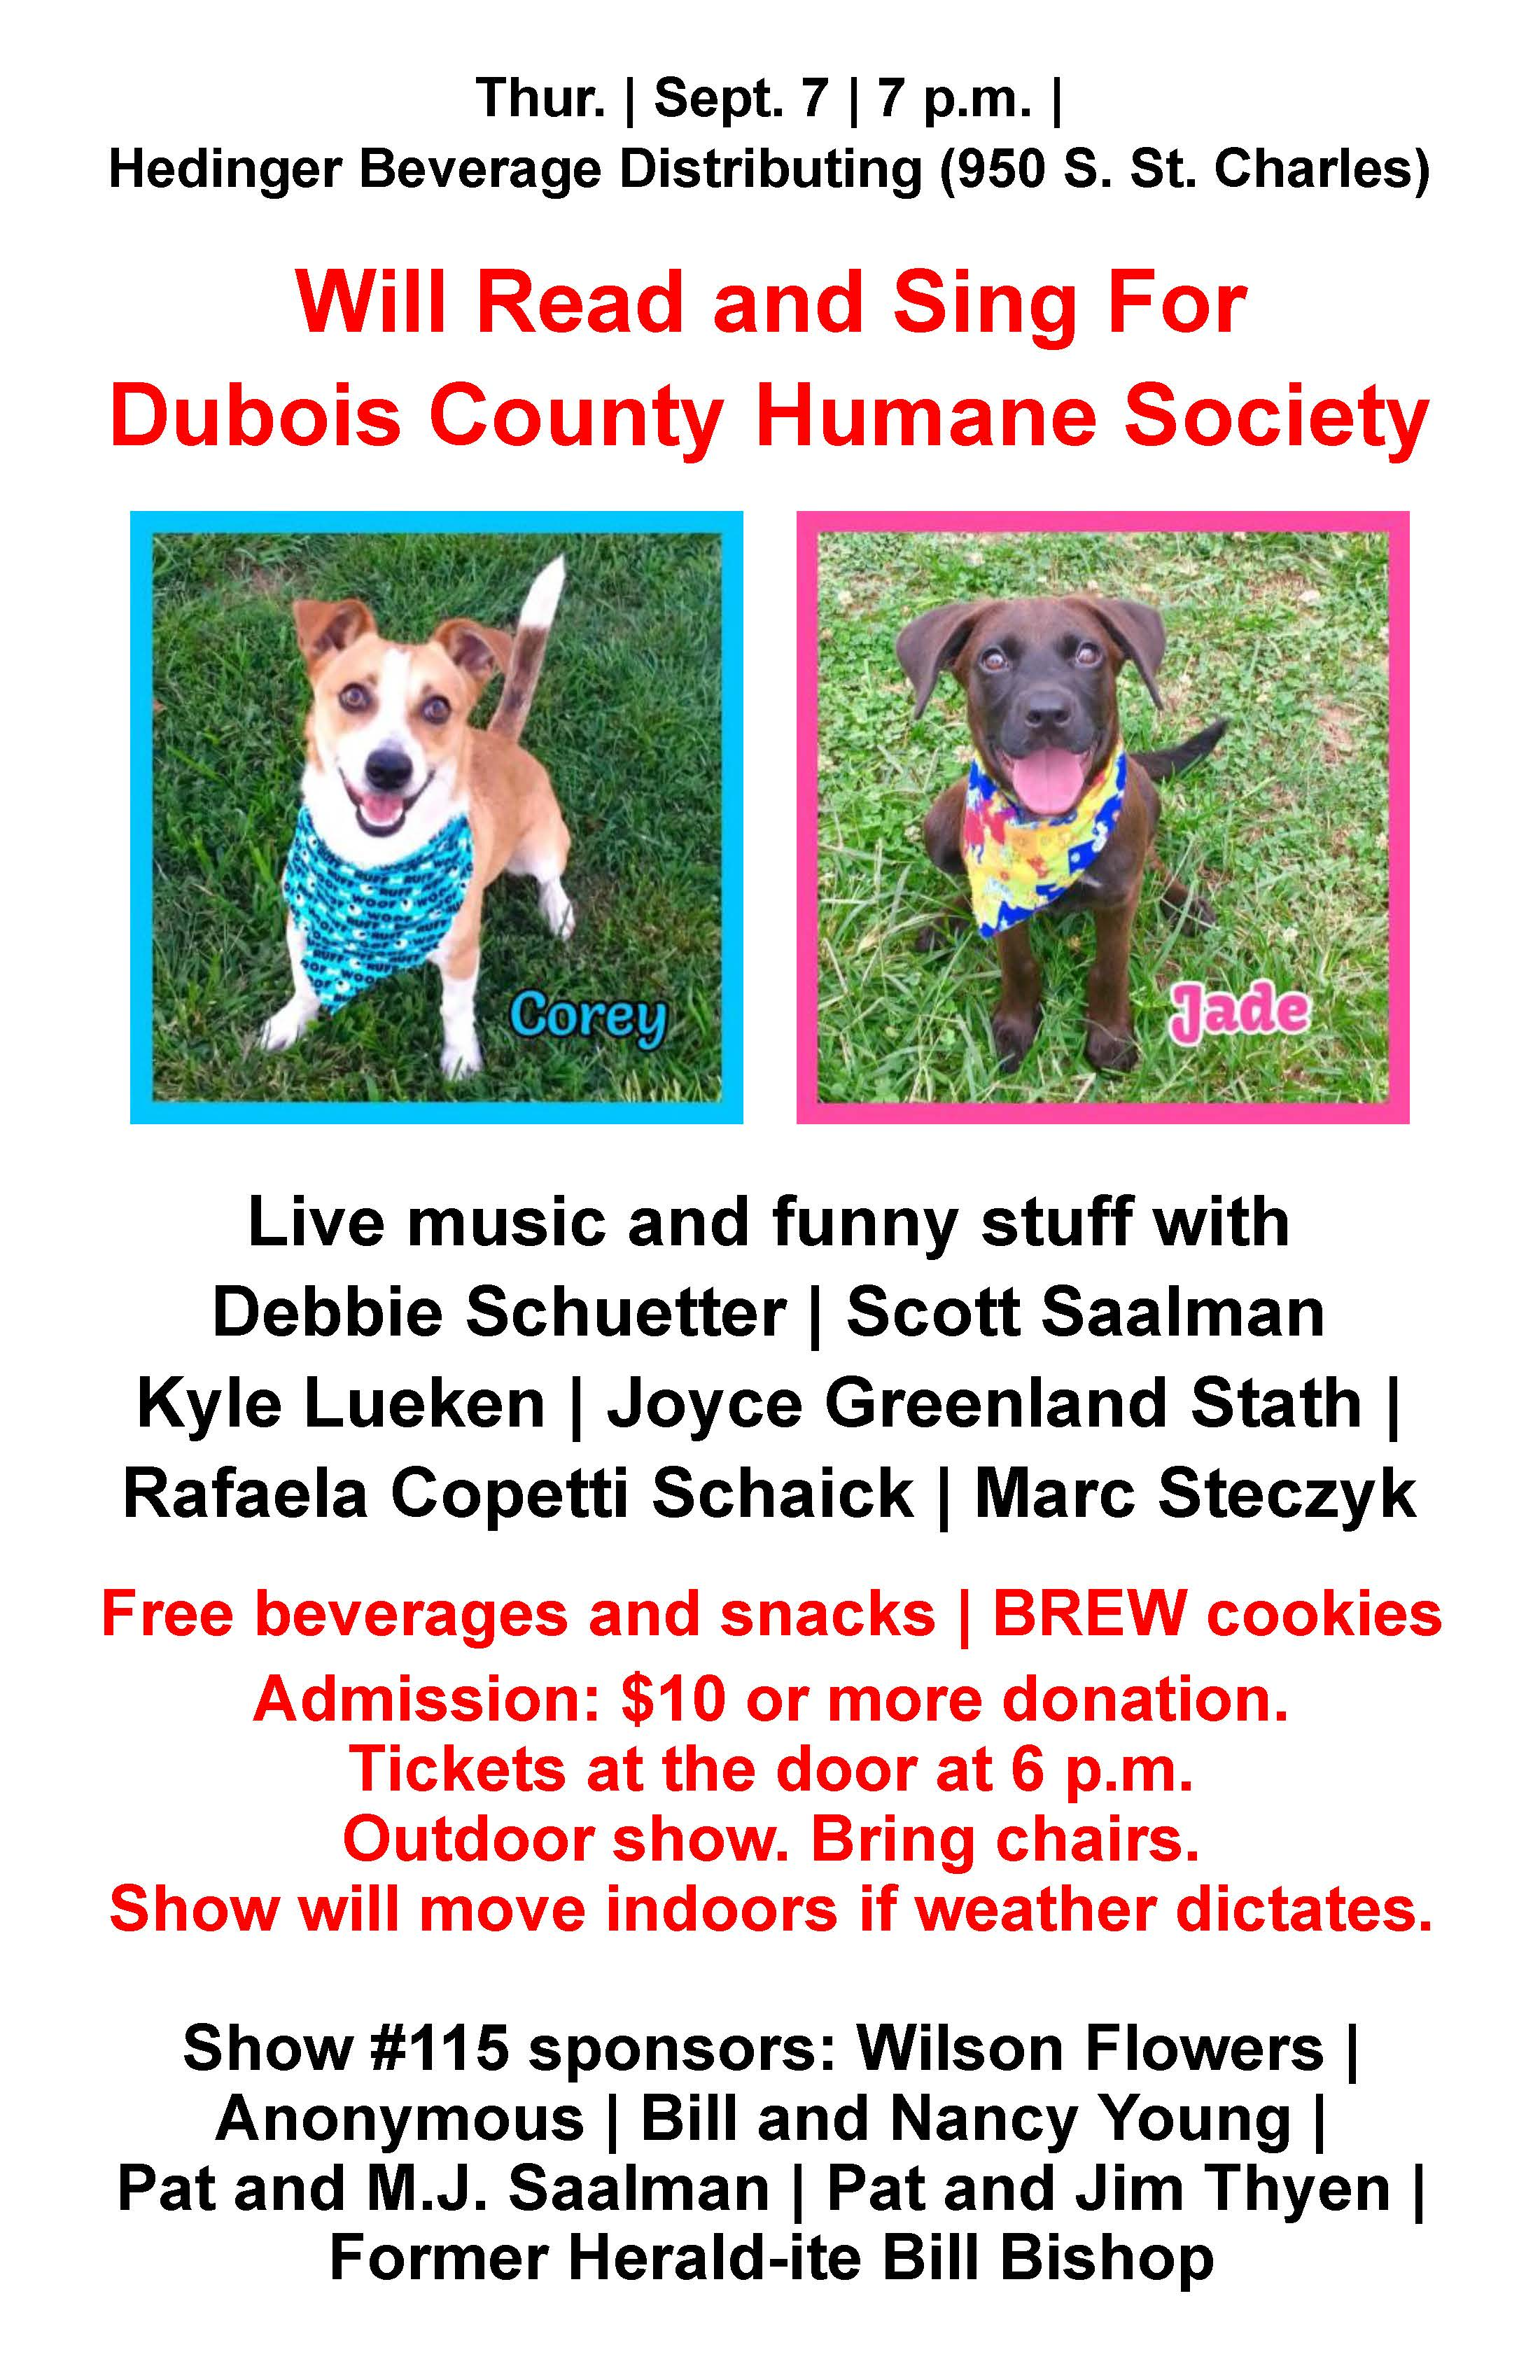 Will Read and Sing for Dubois County Humane Society Sept 7